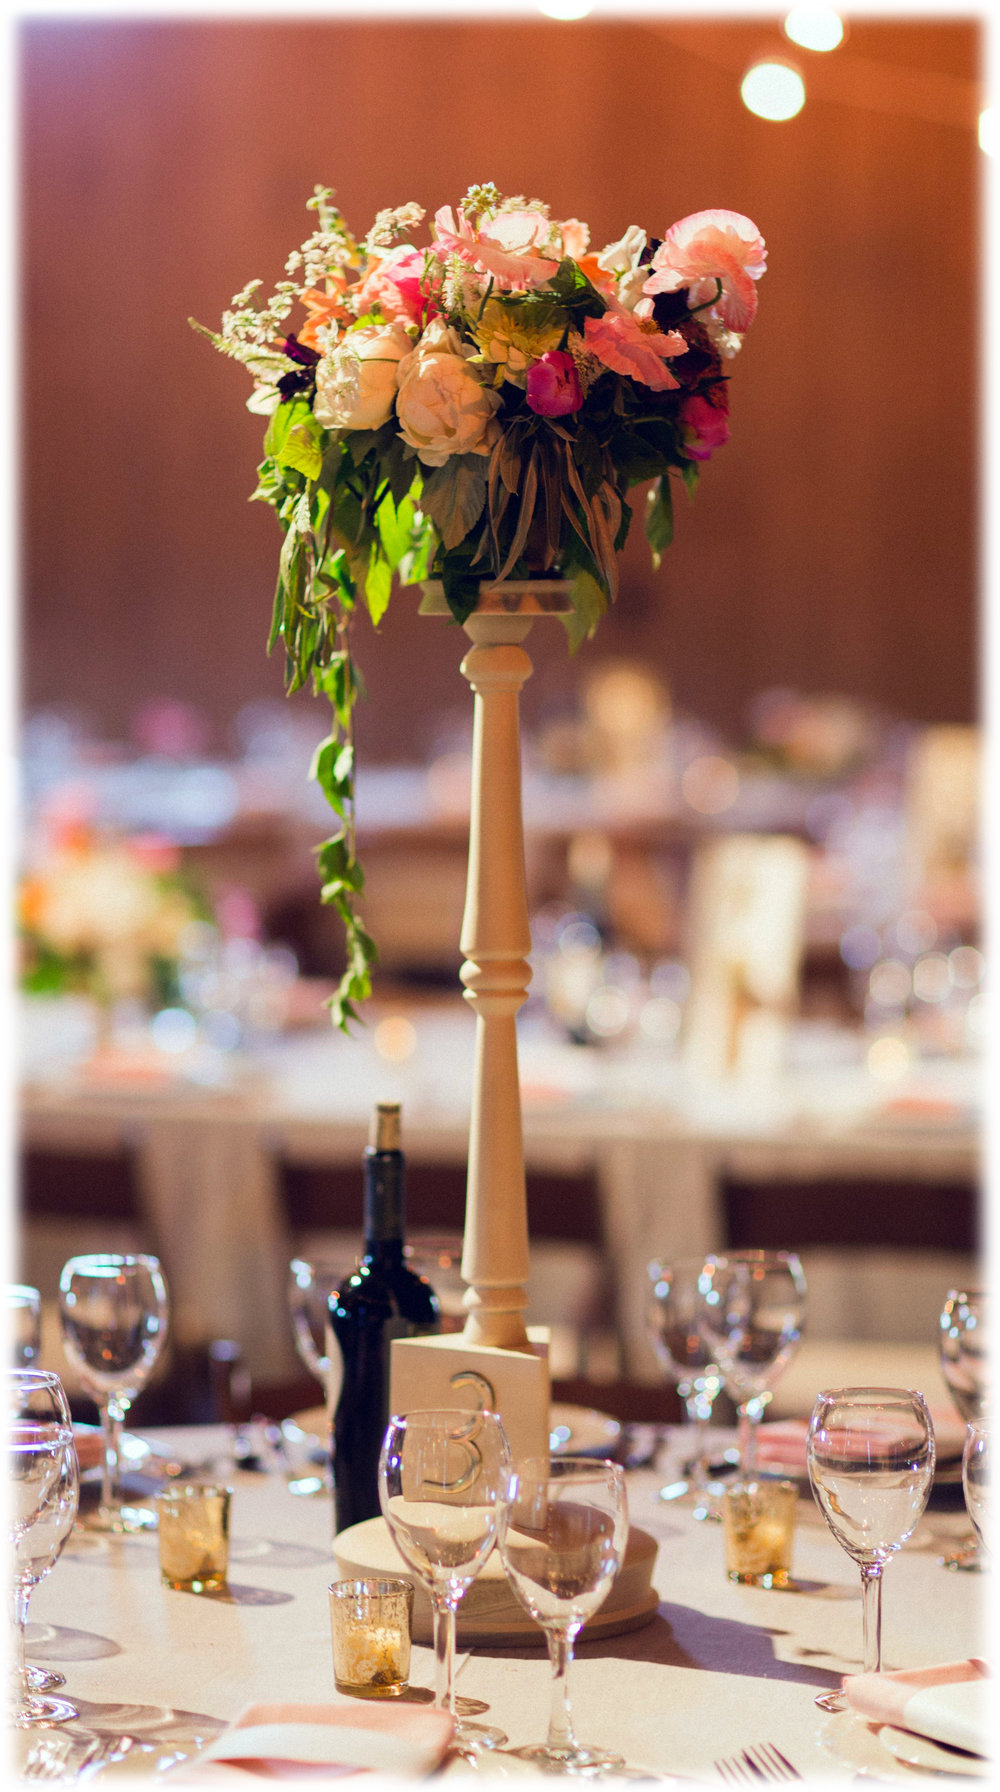 Table Flower Stand 01.jpg